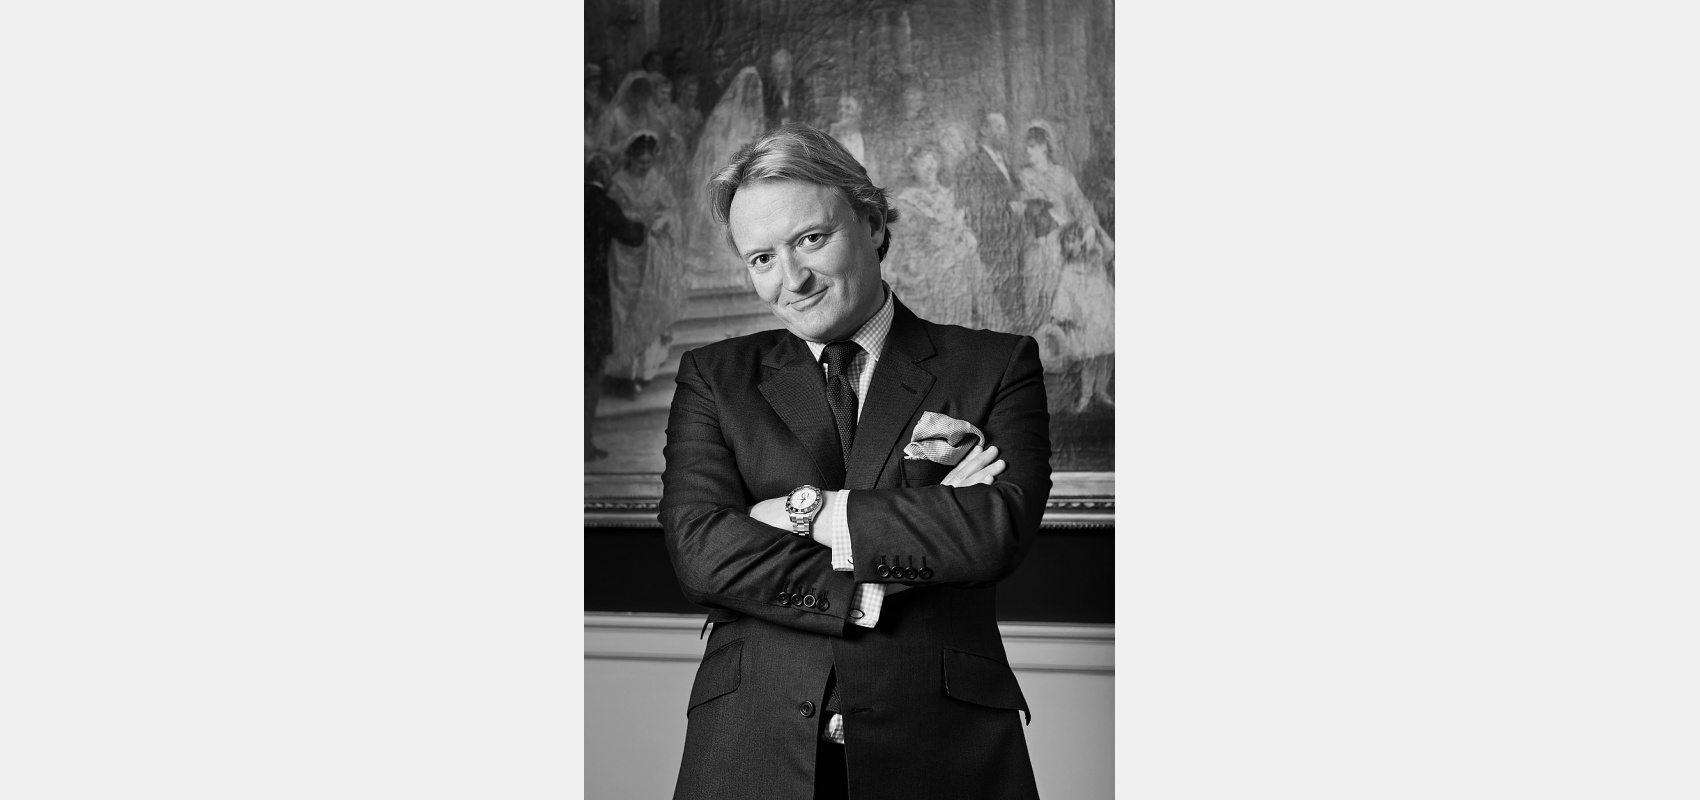 Portrait photography/Black & white/company portrait/male in suit/Mayfair office.